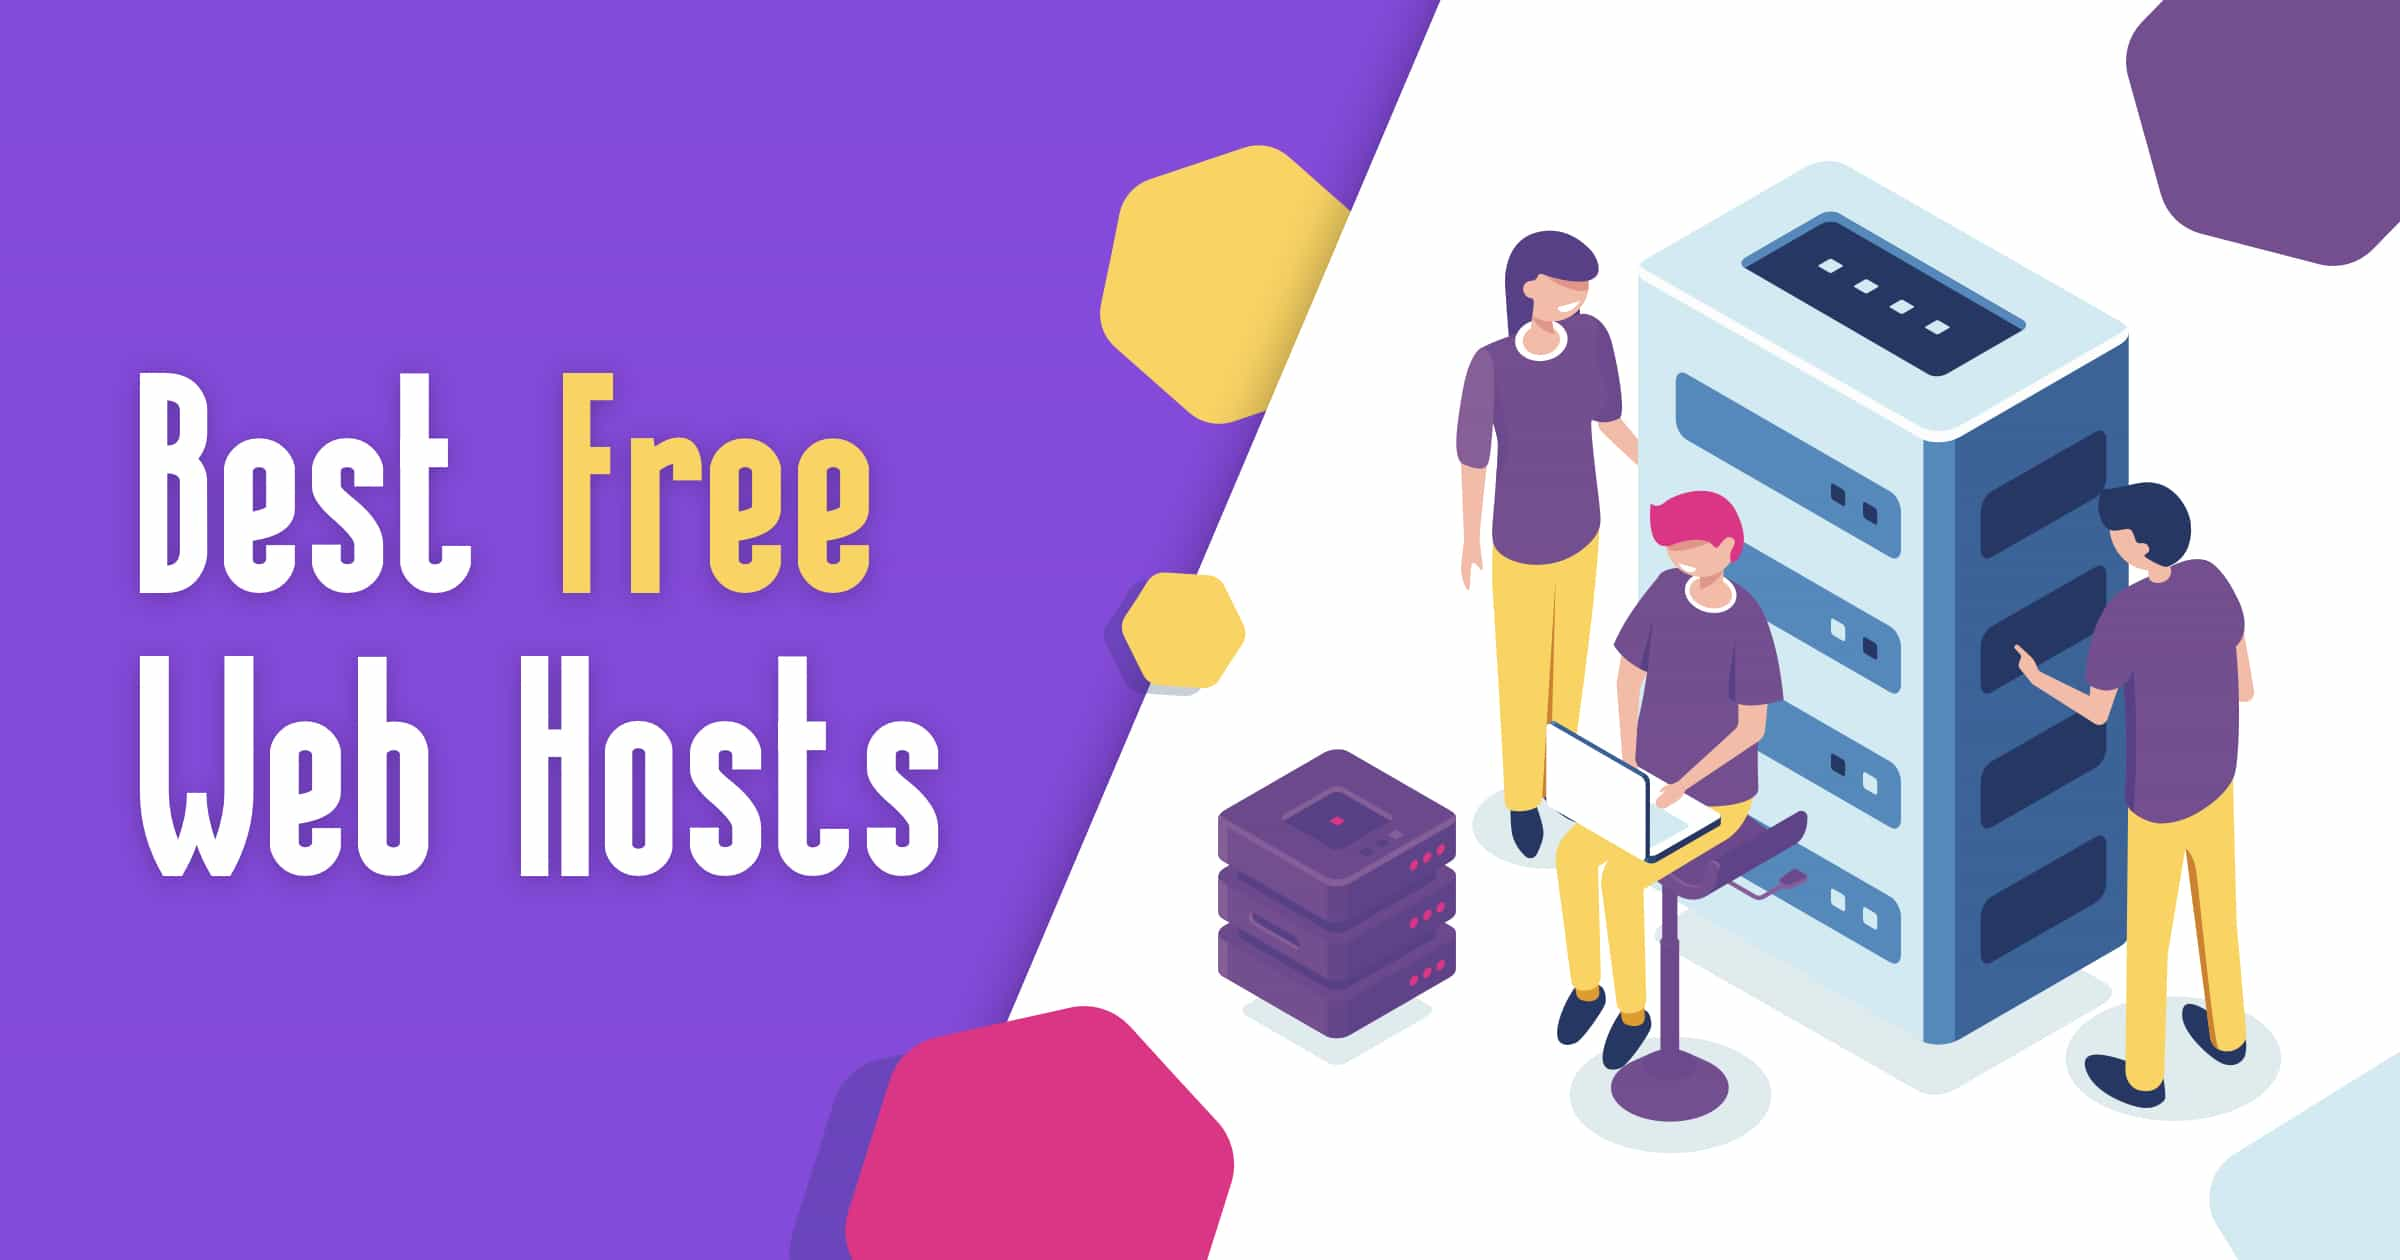 5 Best Free Web Hosting Services That Actually Work In 2021